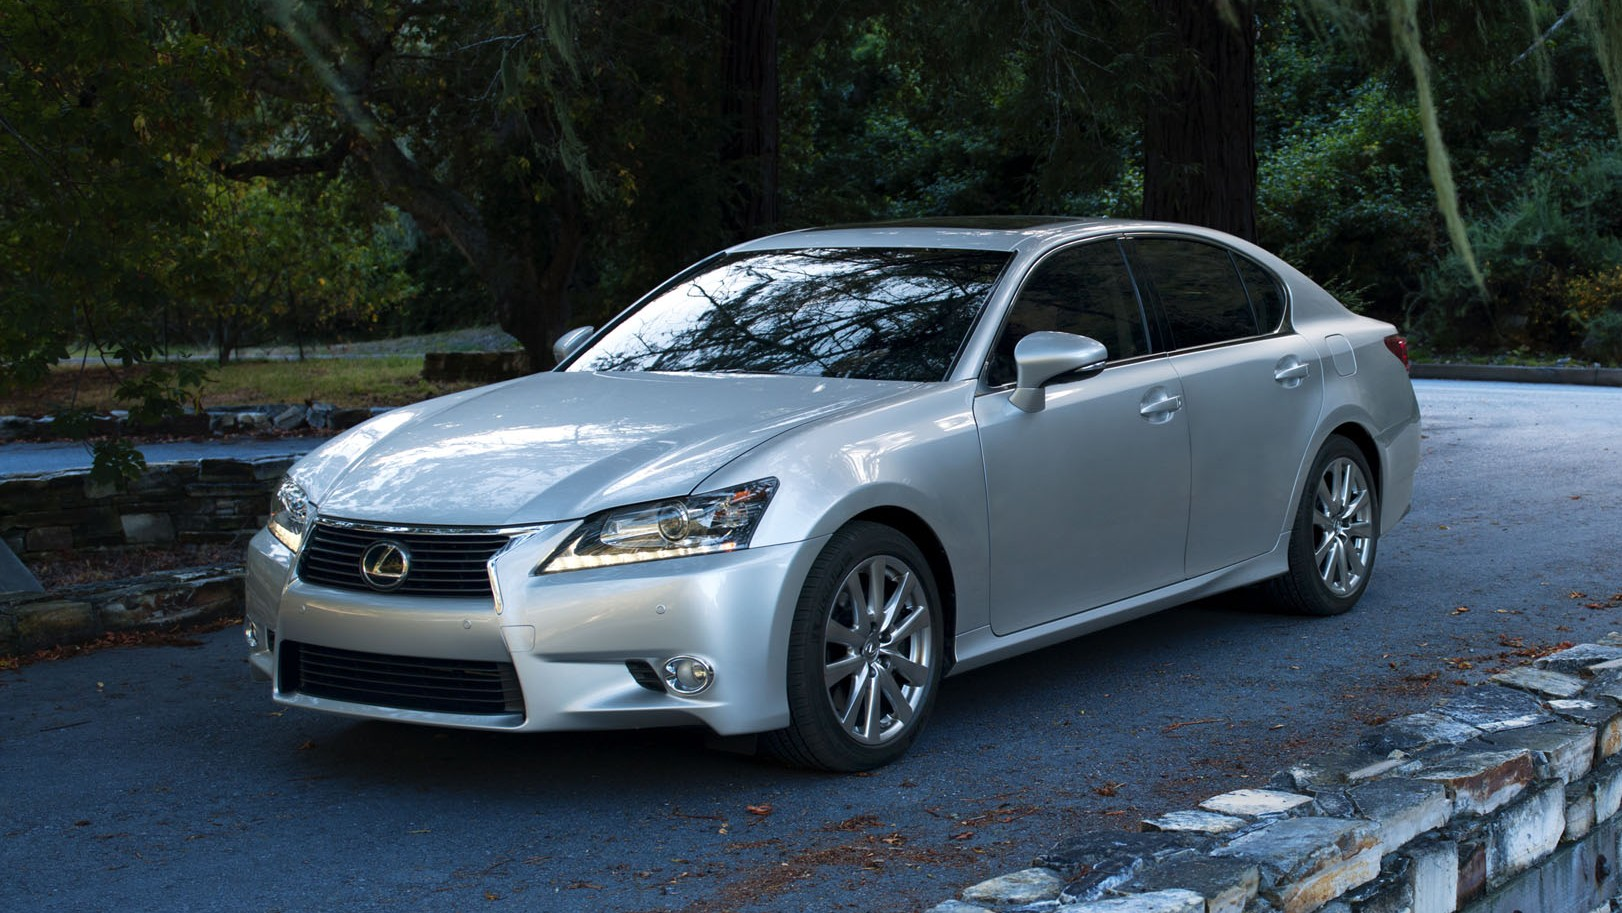 Land Rover Jacksonville >> 2015 Lexus GS 350 Review, Ratings, Specs, Prices, and ...